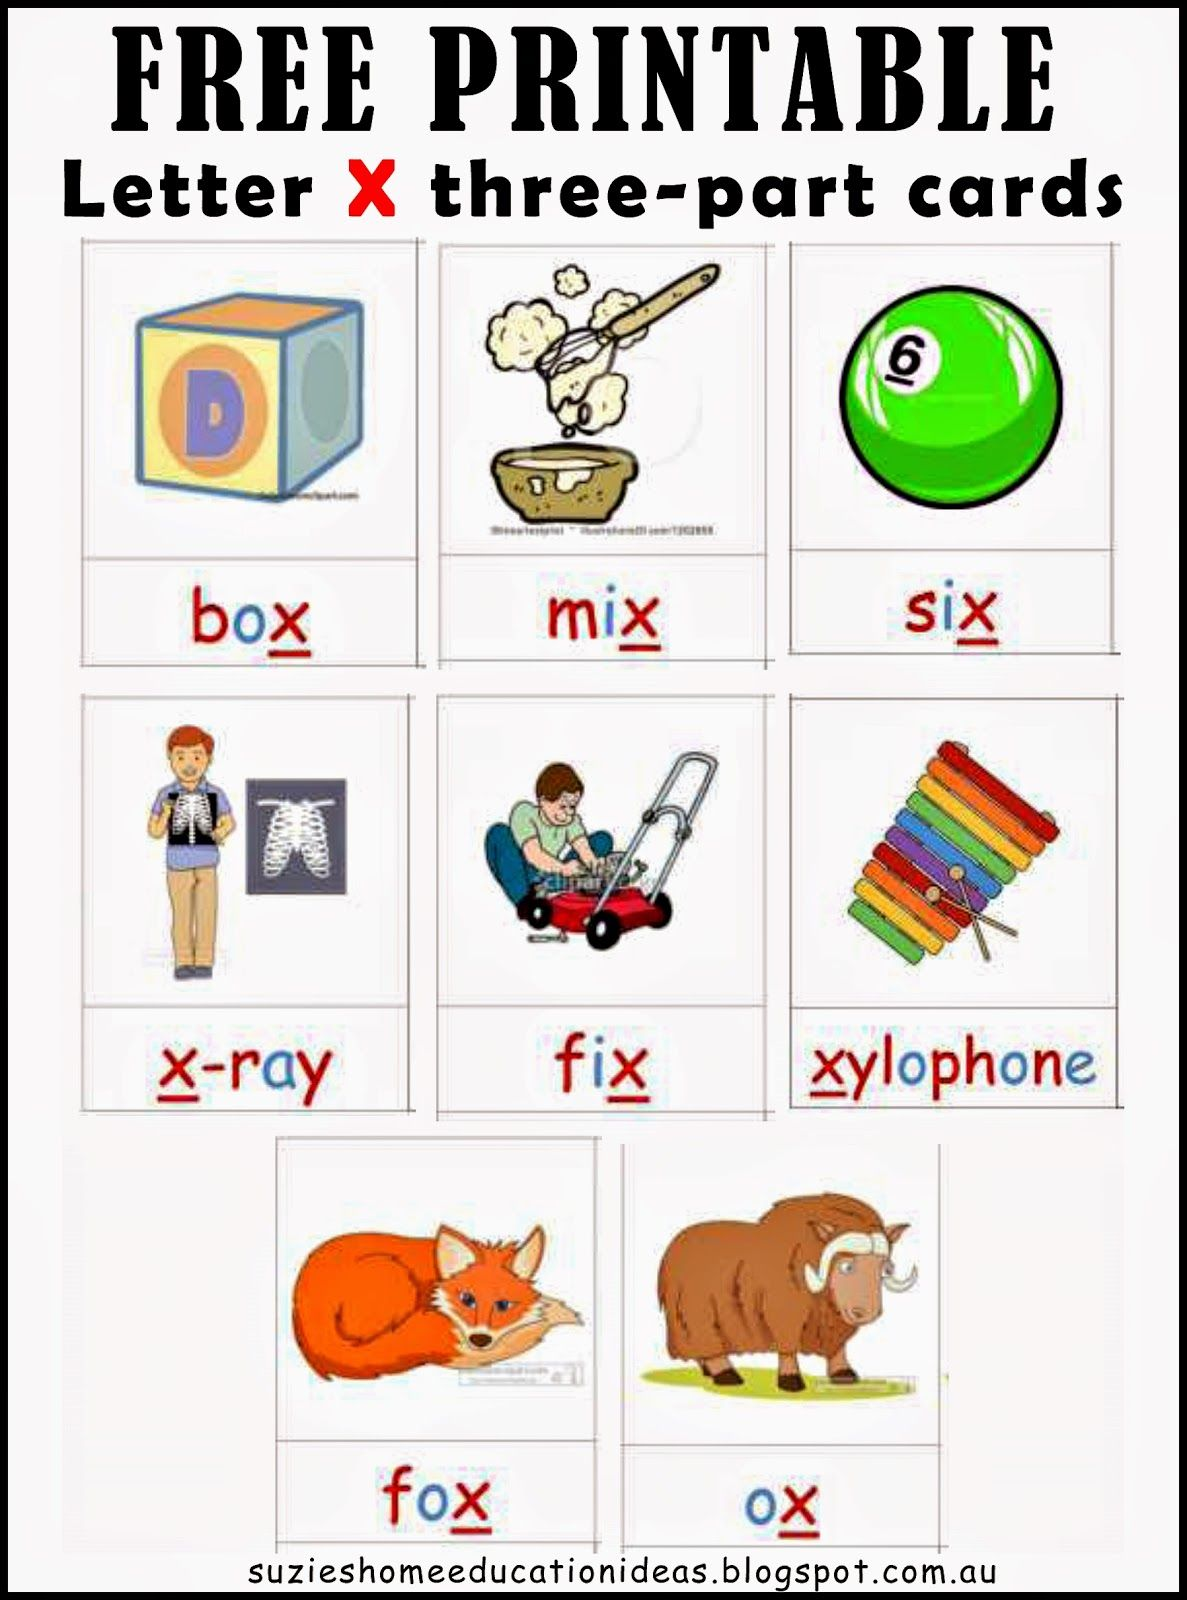 worksheet X Words For Kids letter x printable cards and activity ideas ideas